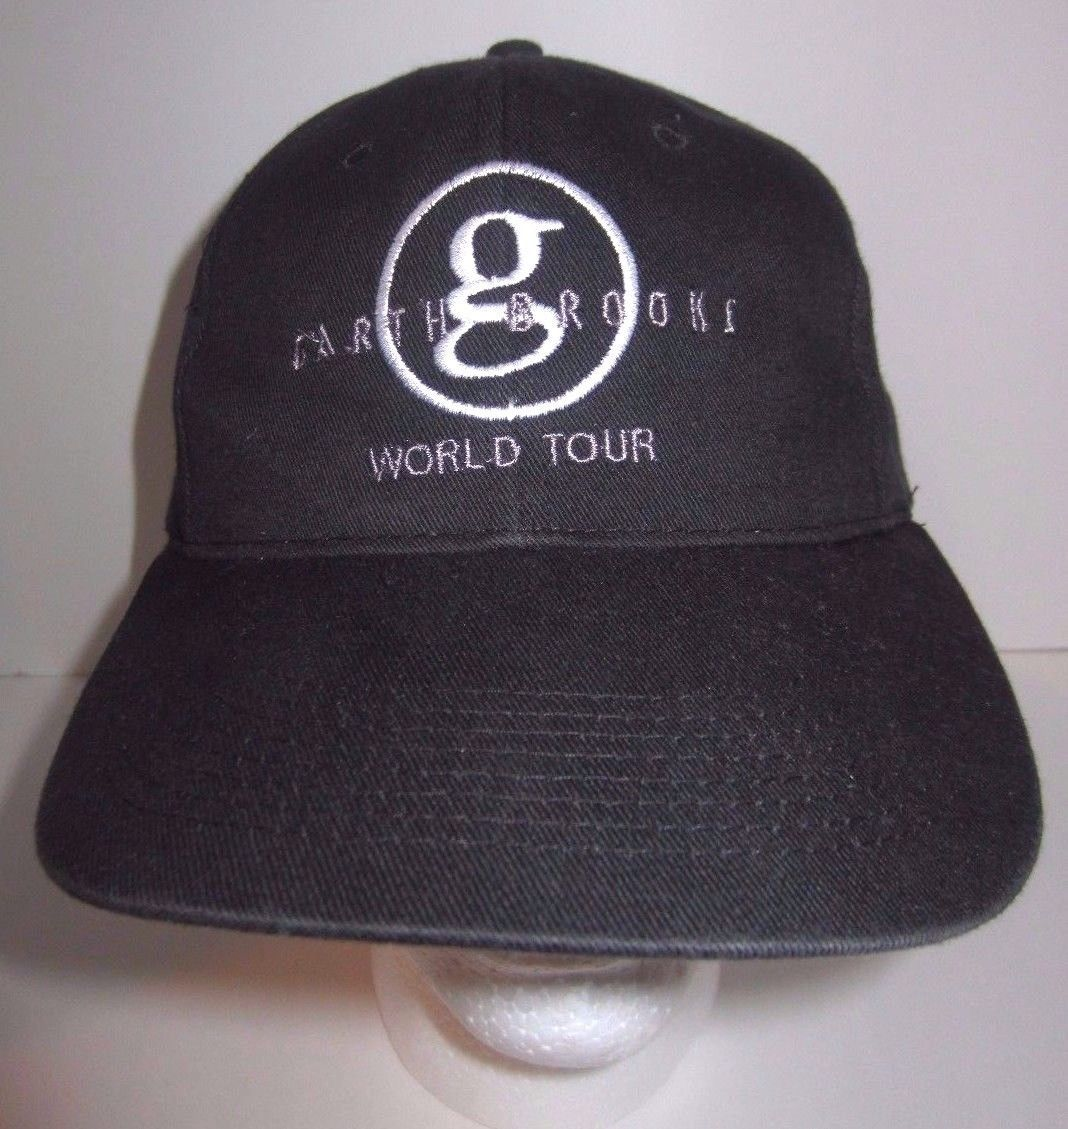 Primary image for Garth Brooks World Tour Hat Cap - Snapback - Country Music